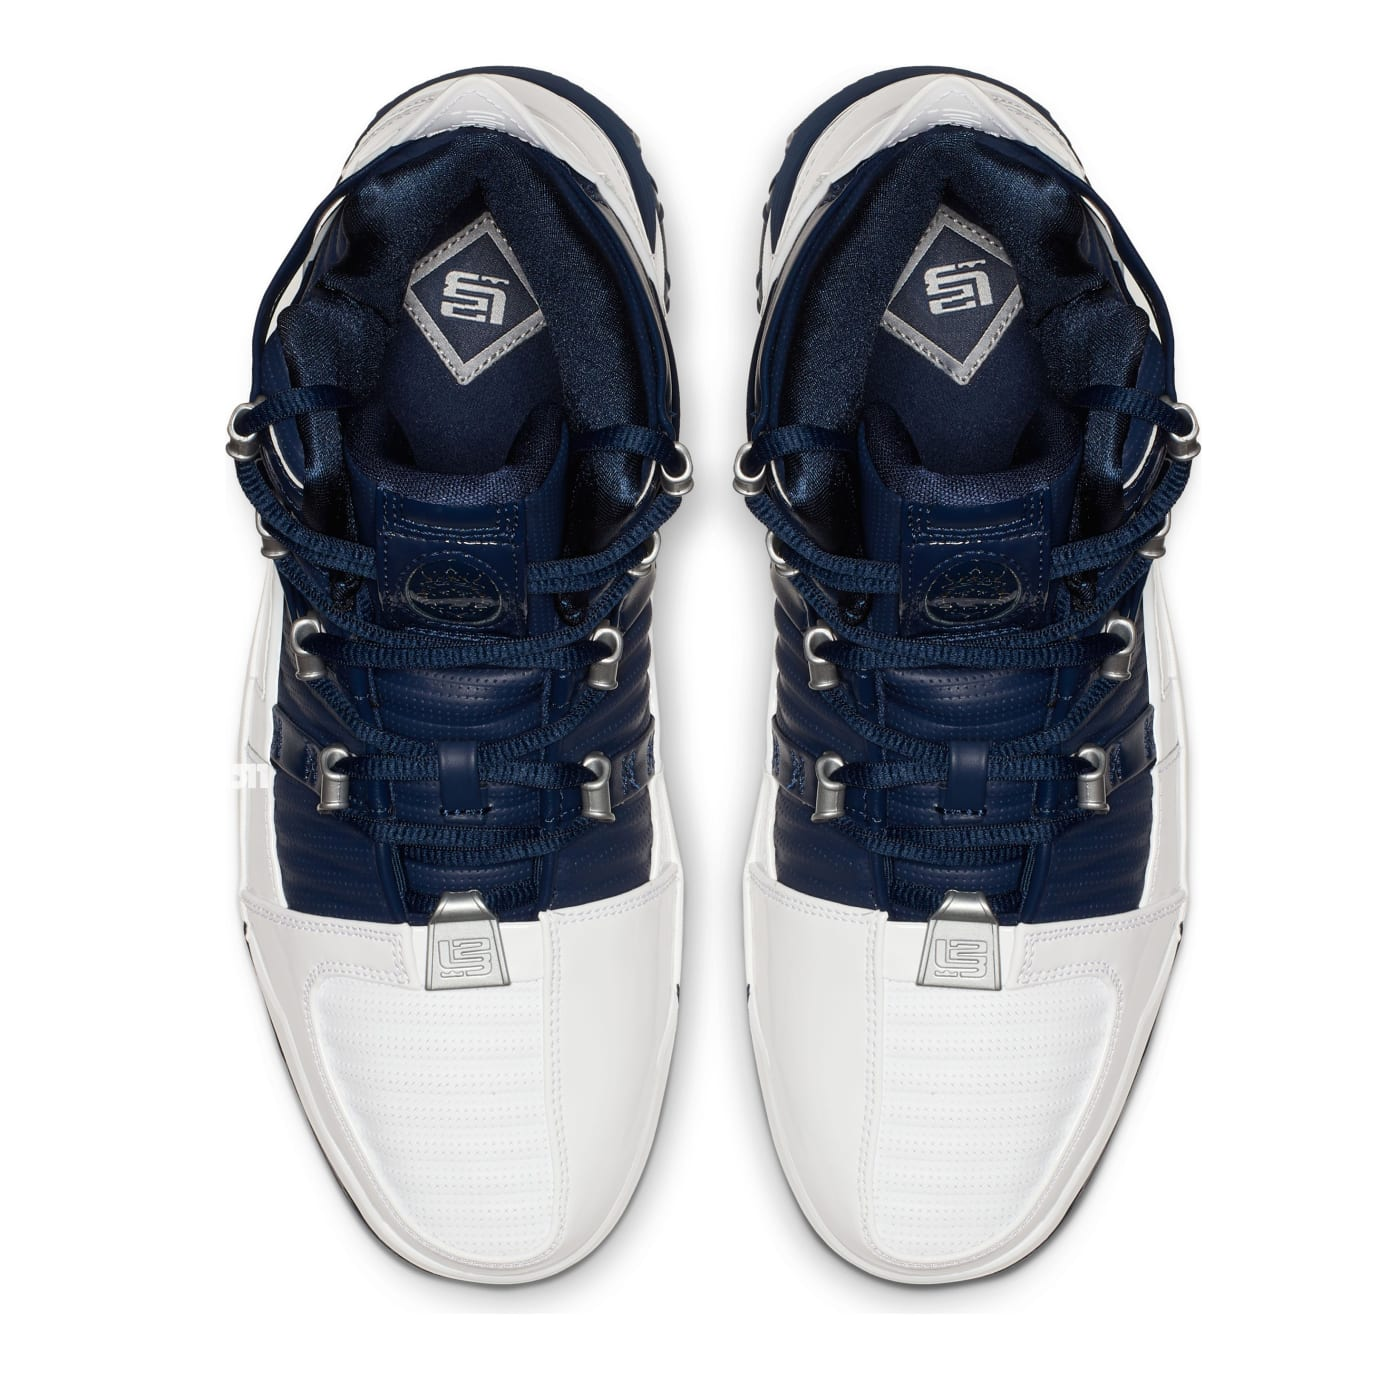 dc4fe21752d cheapest image via us11 nike zoom lebron 3 white navy blue silver top be2ad  72e6c